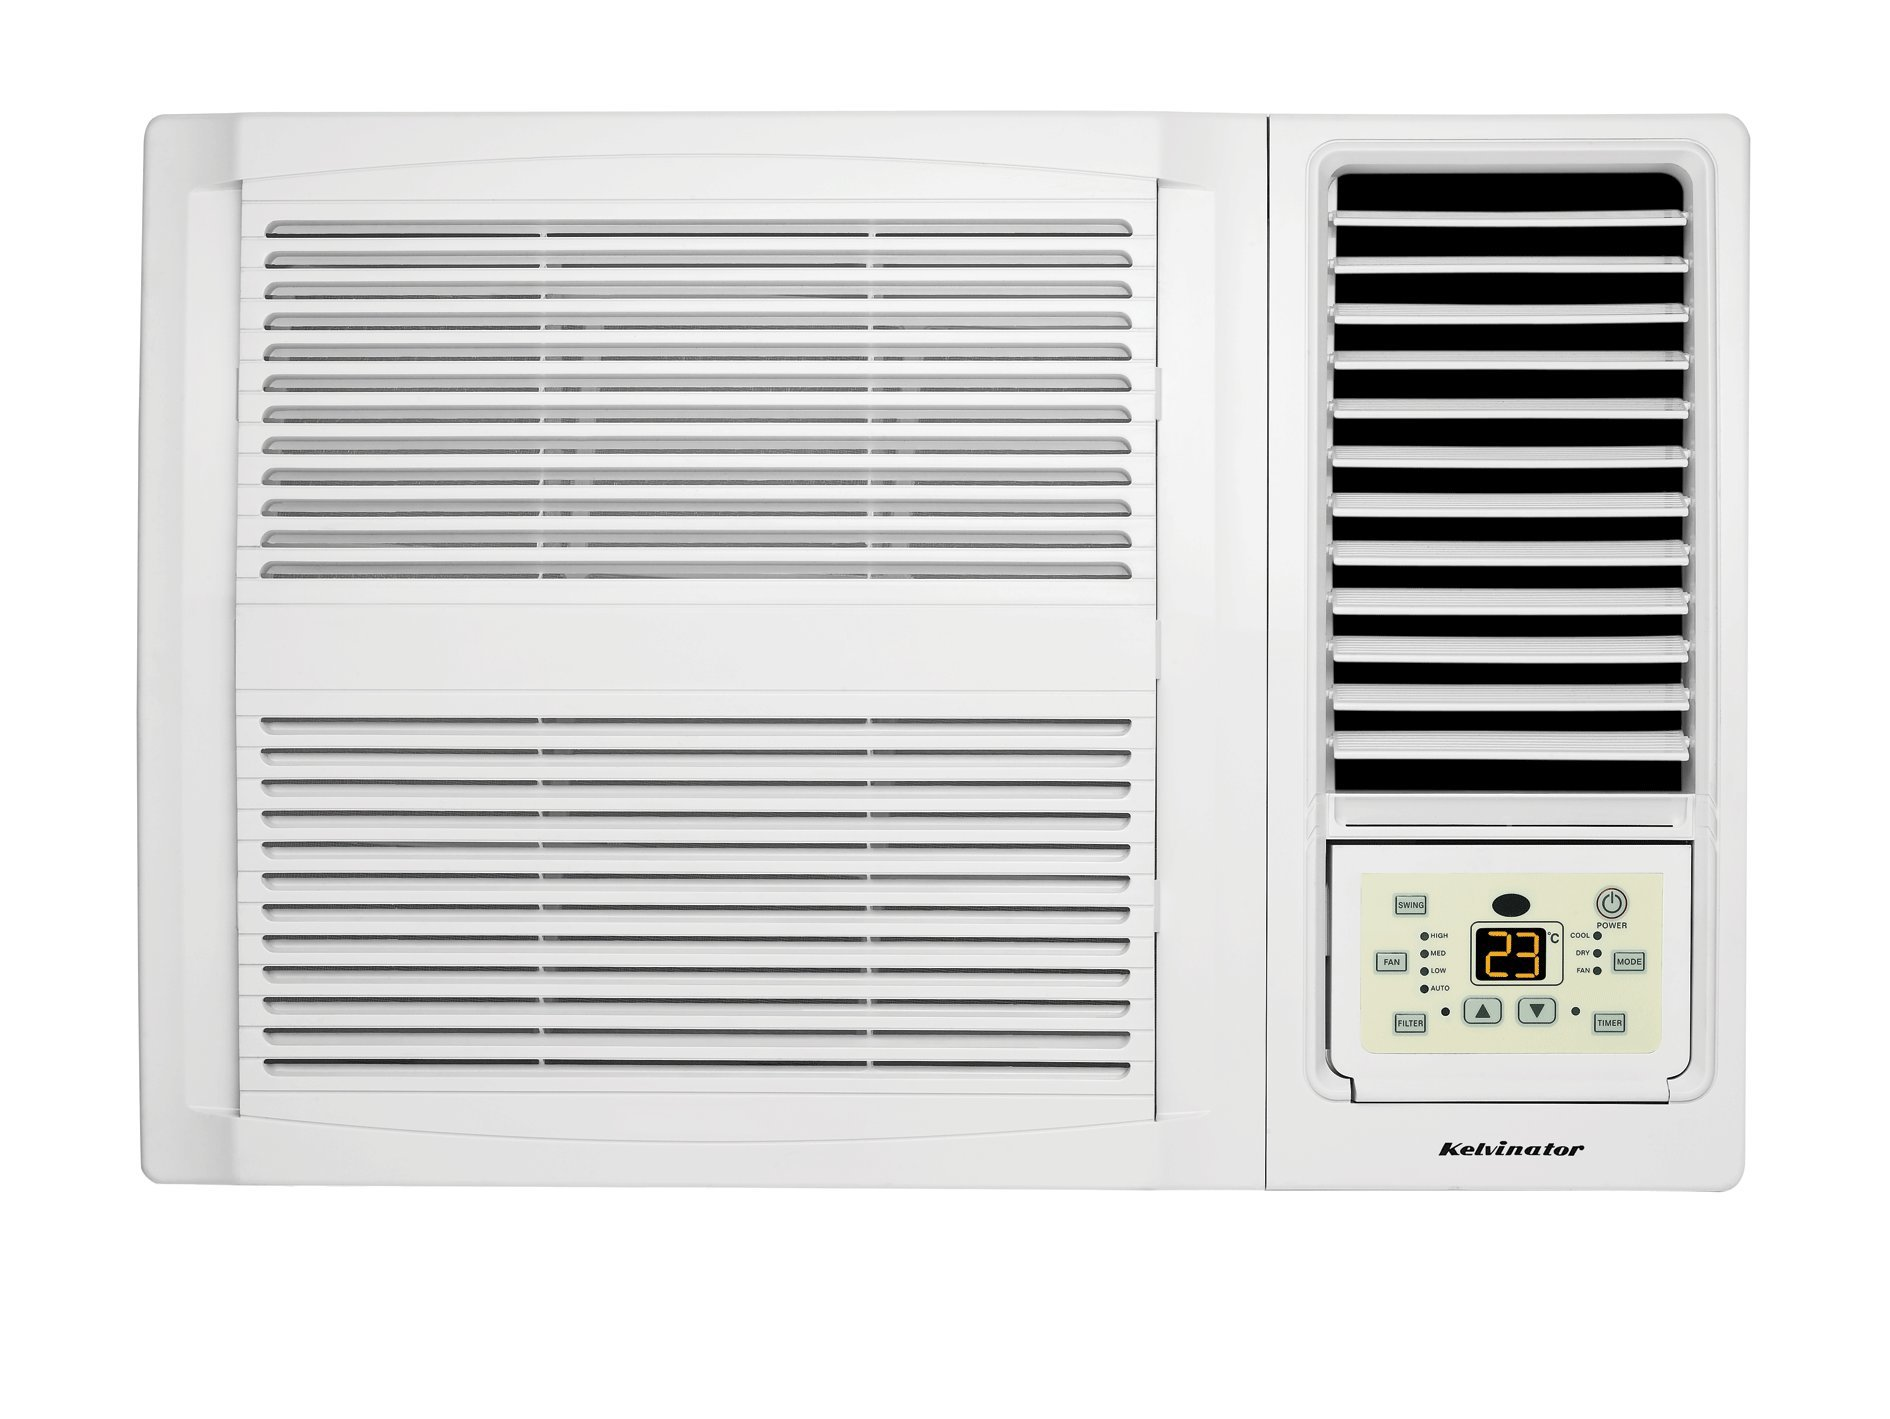 Kelvinator KWH26CRE 2.7kW Window Box Air Conditioner - FREE Delivery & Price Match* image